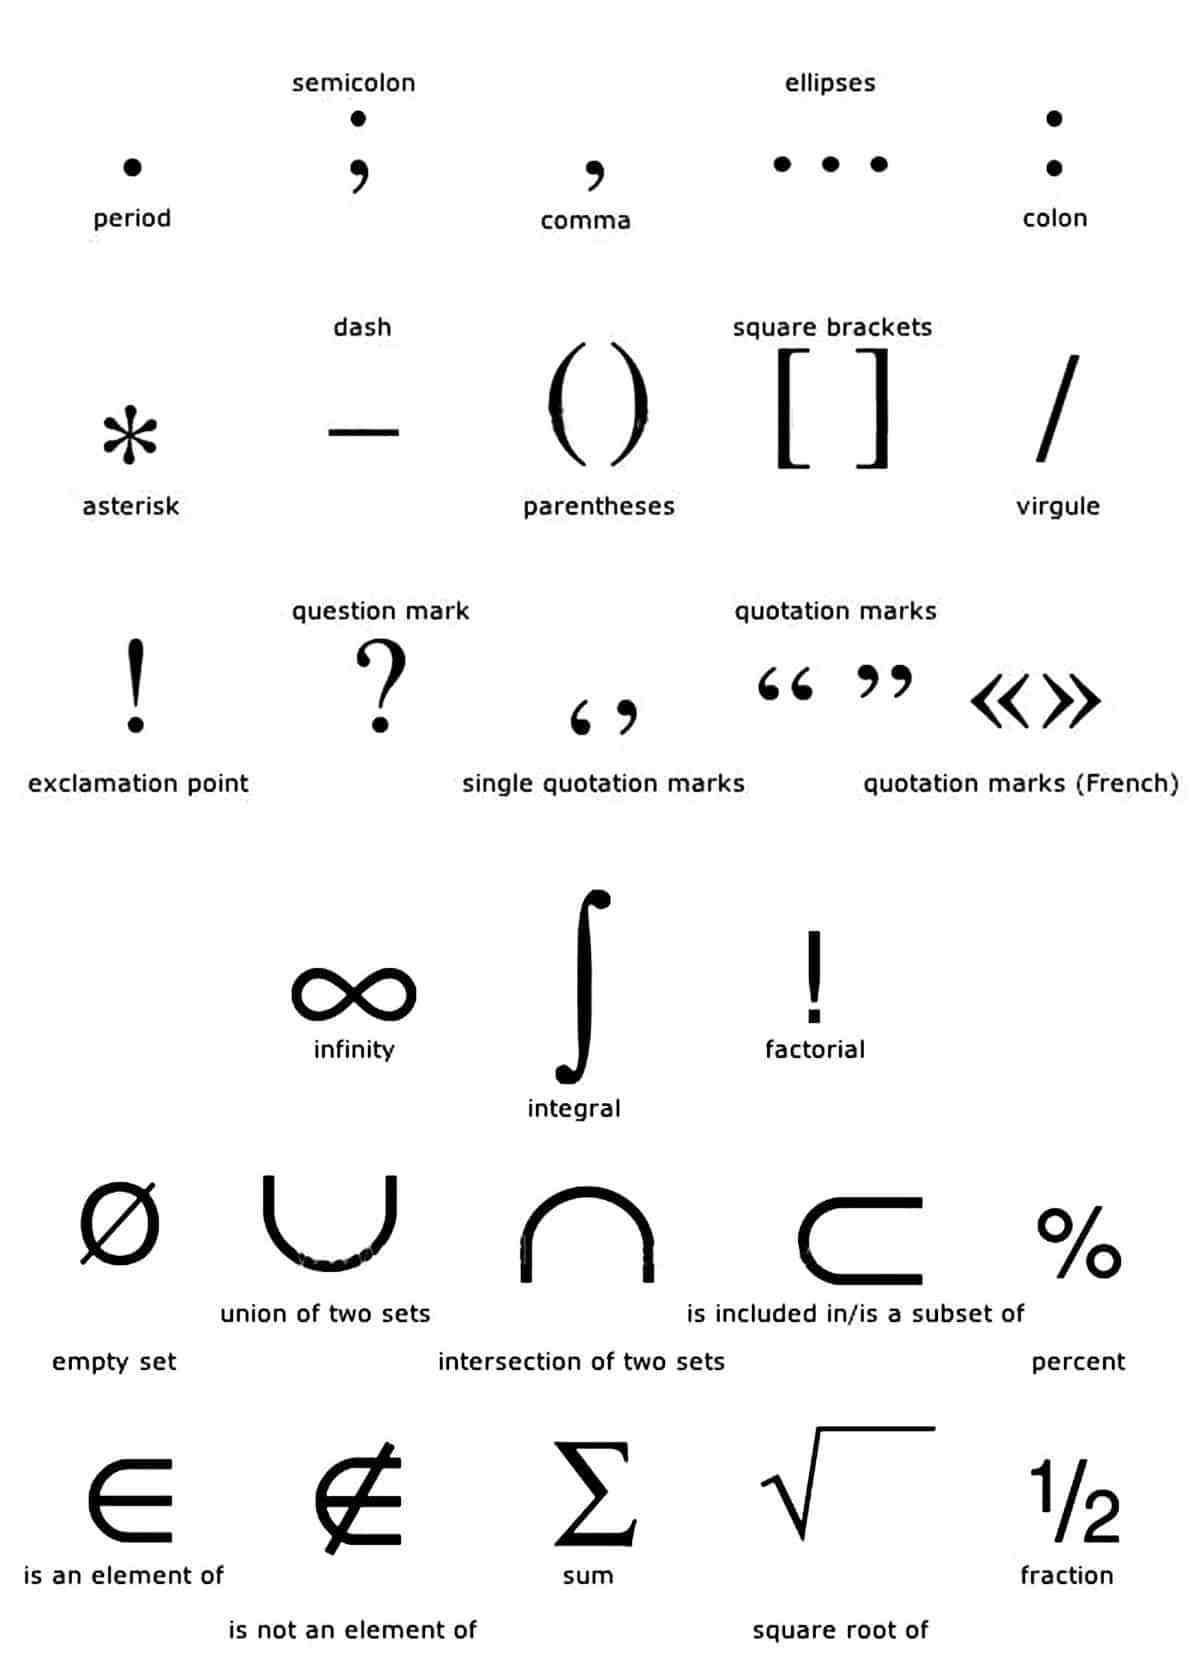 Punctuation Marks Keyboard And Math Symbols In English